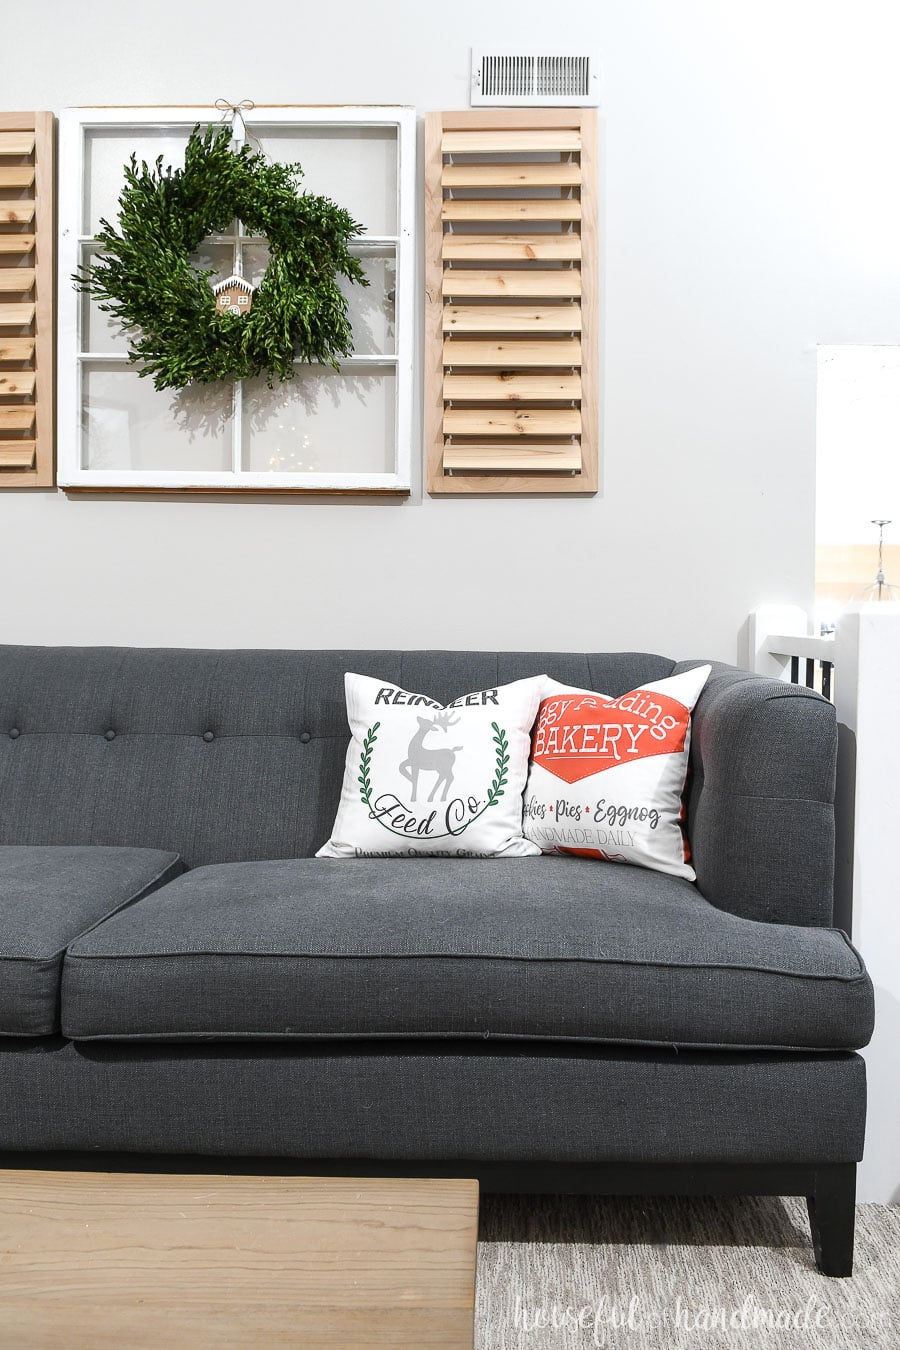 Gray sofa with Reindeer Feed Company and Figgy Pudding Bakery pillow on it.